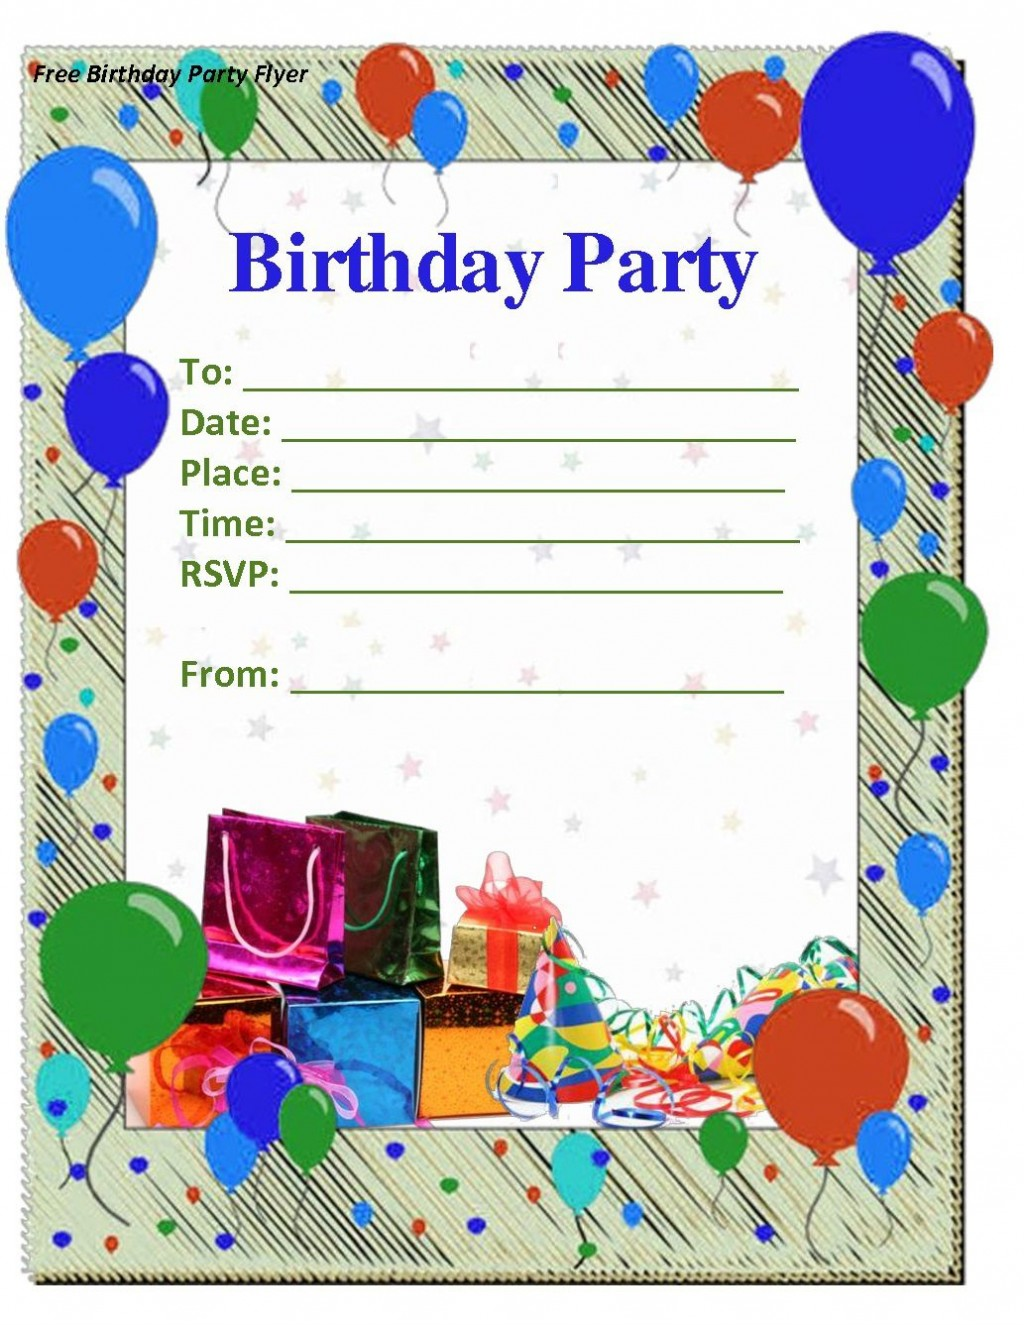 009 Staggering Free Birthday Party Invitation Template For Word Idea Large